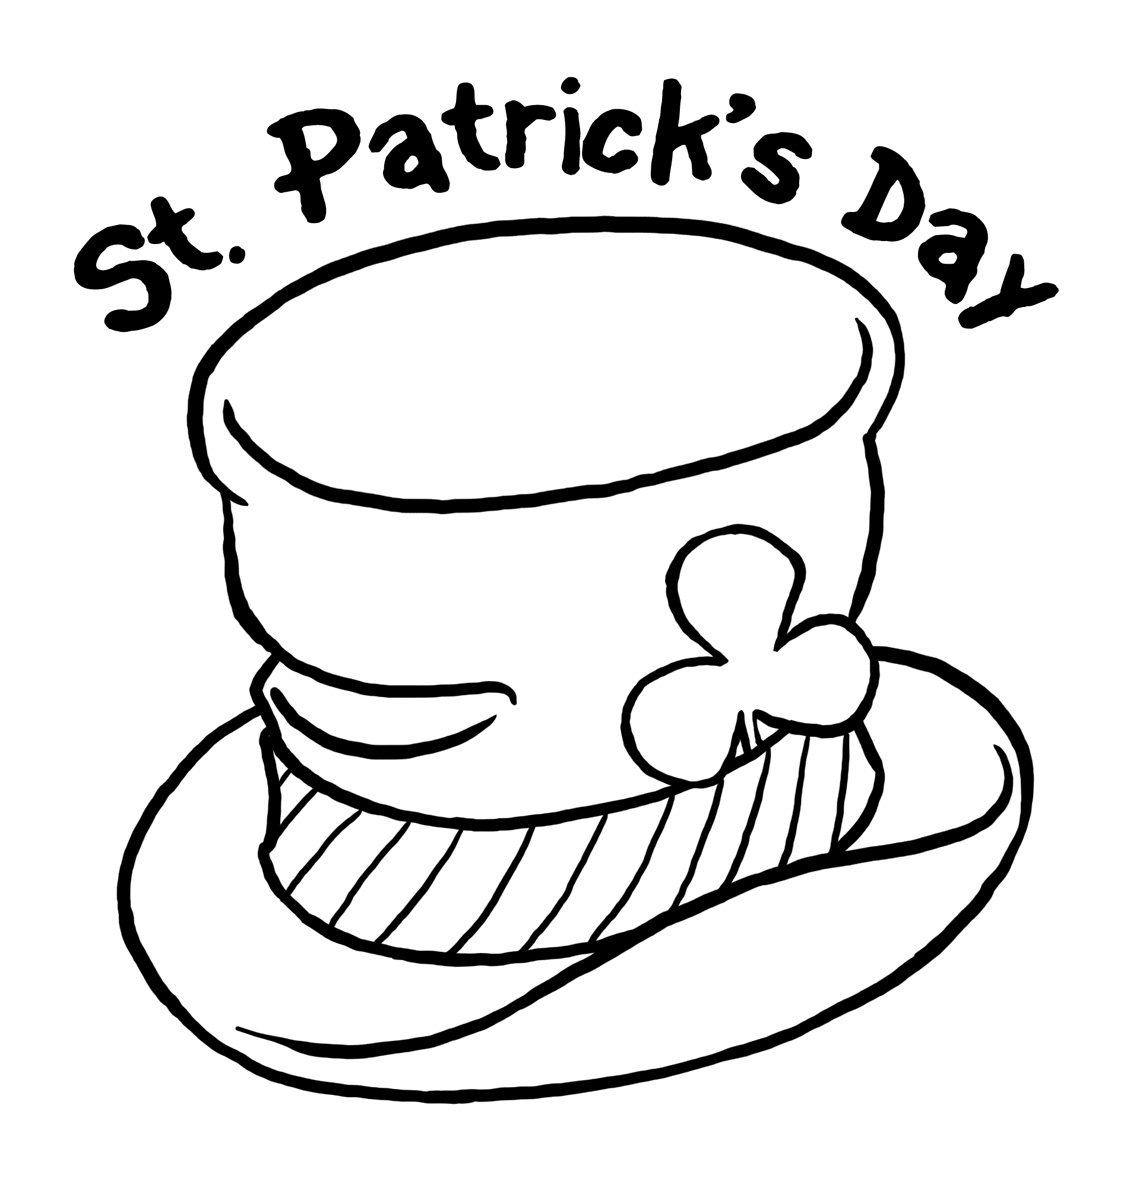 St Patricks Day Coloring Pages | St. Patrick\'s Day Coloring Pages ...